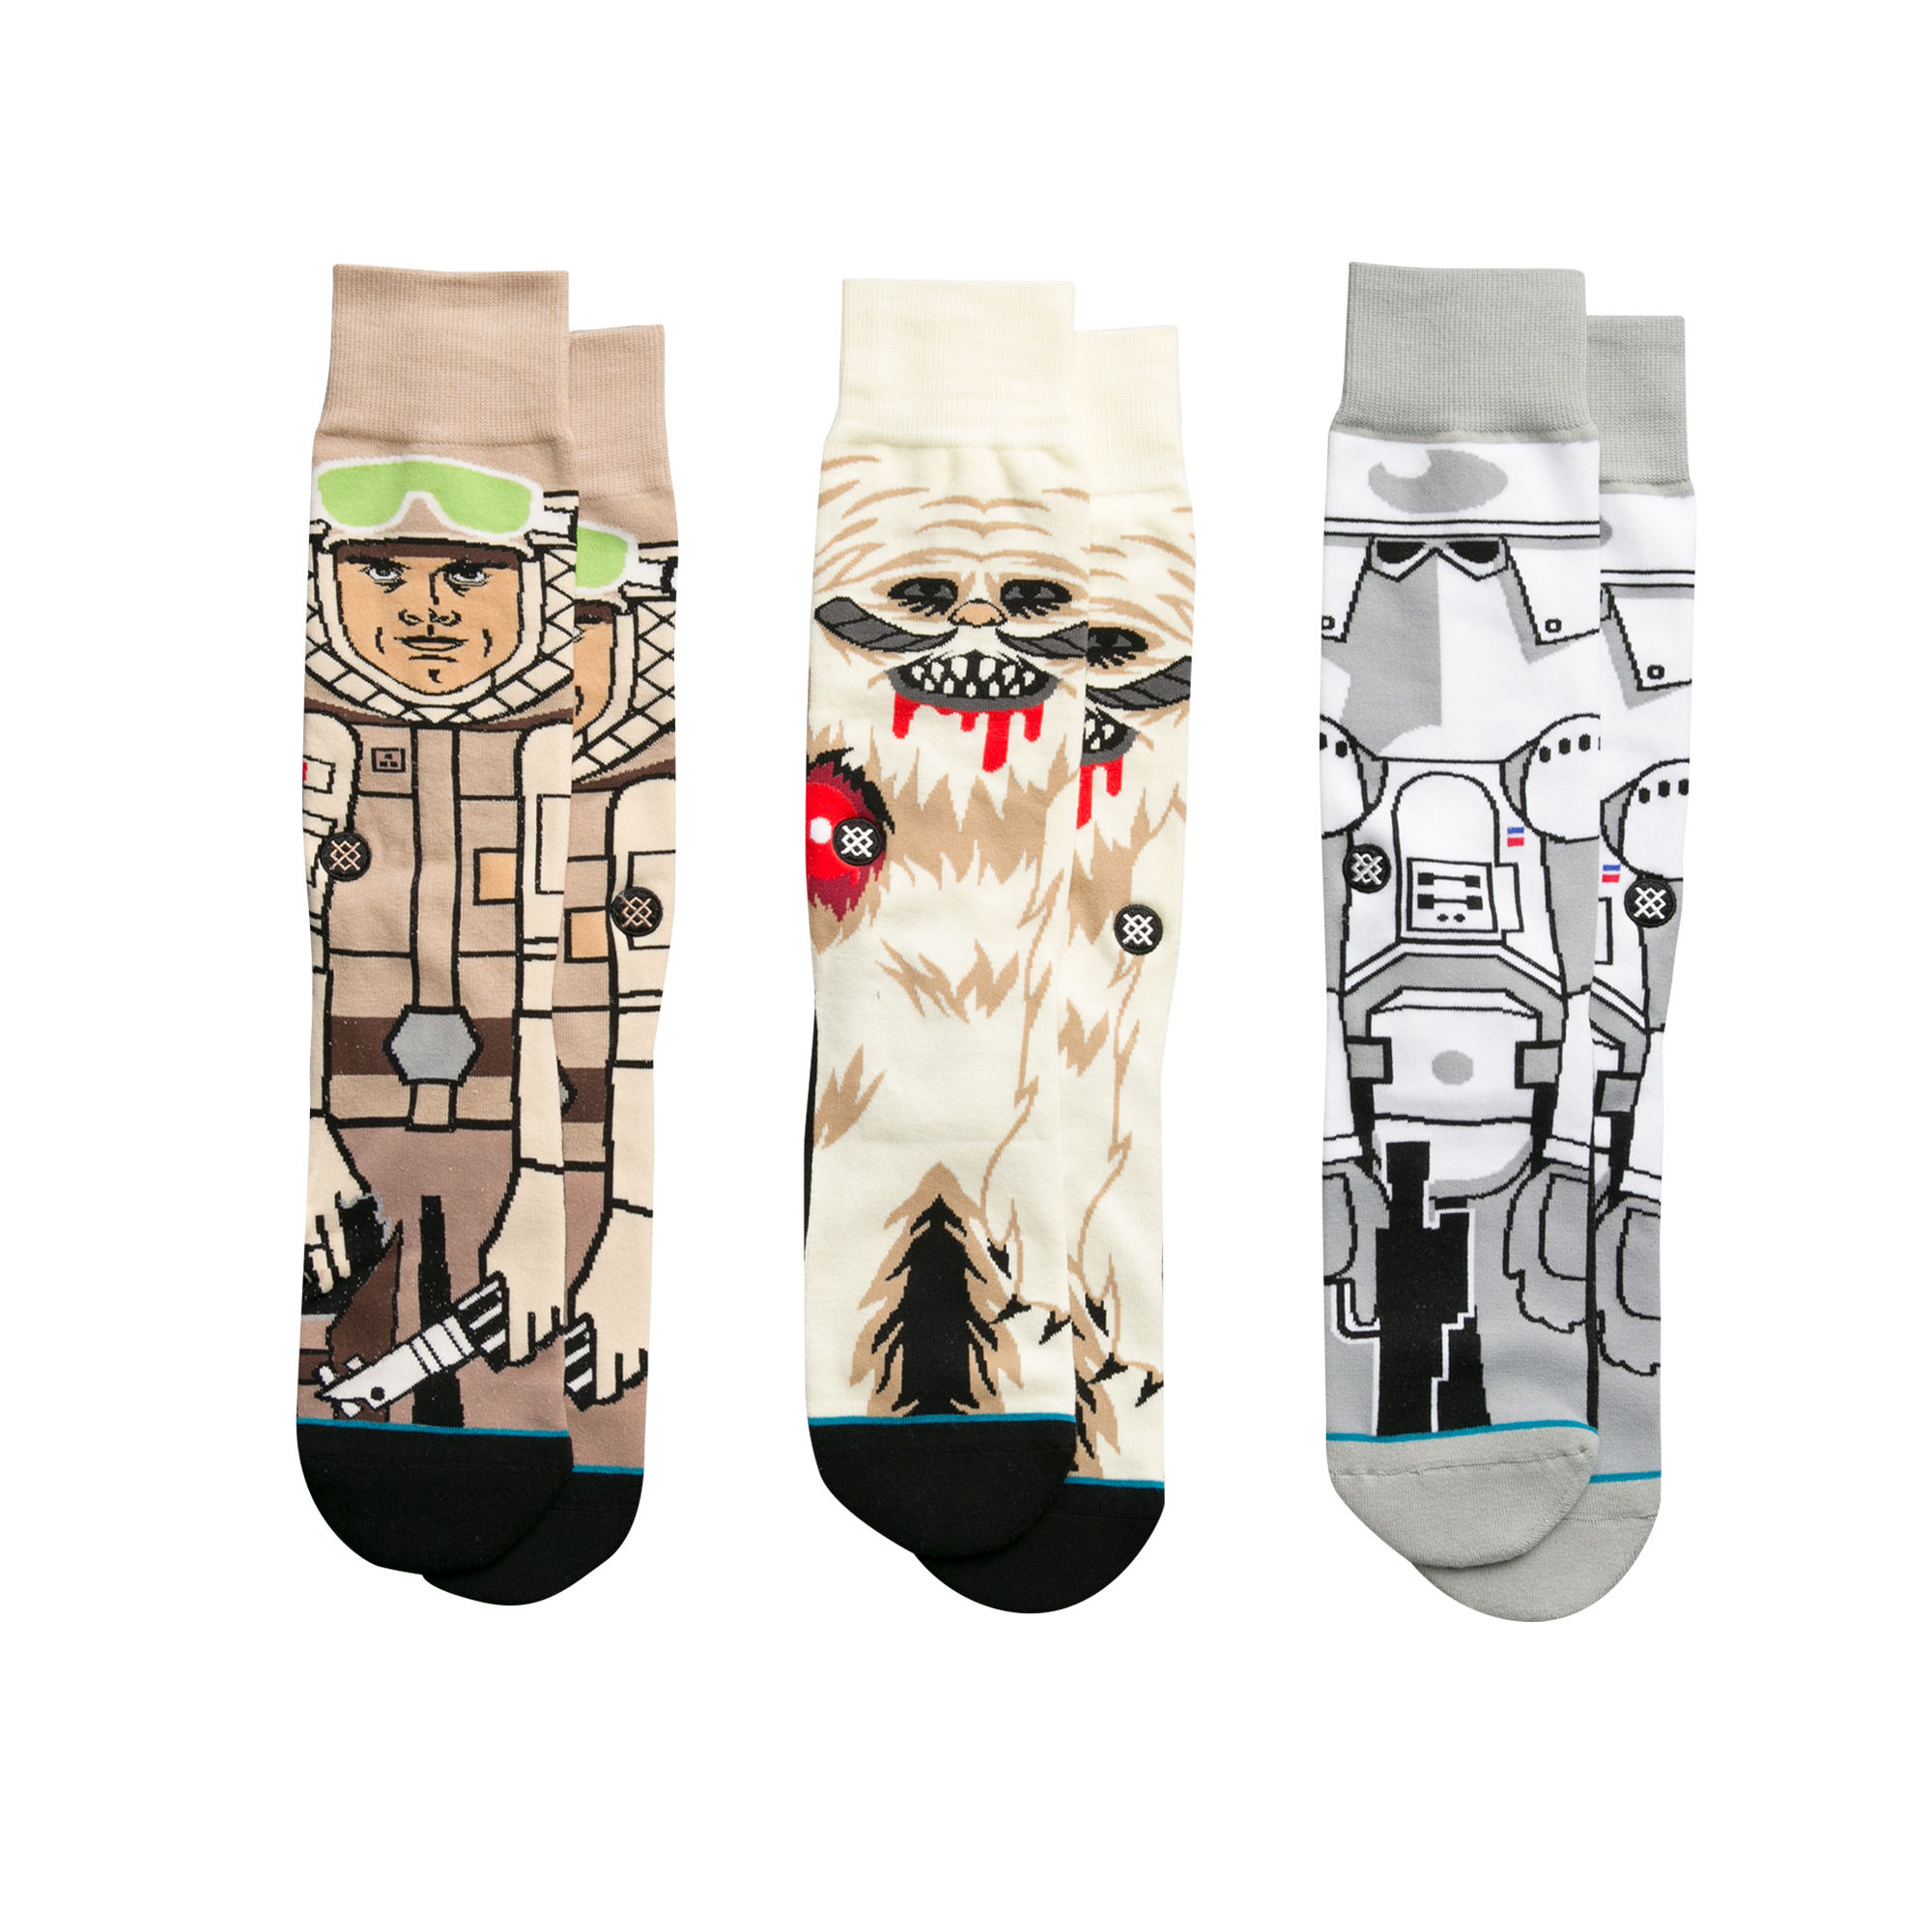 Stance x Star Wars Socks 3 Pack Gift Box Empire Strikes Back SIZE L Movie Sox Set